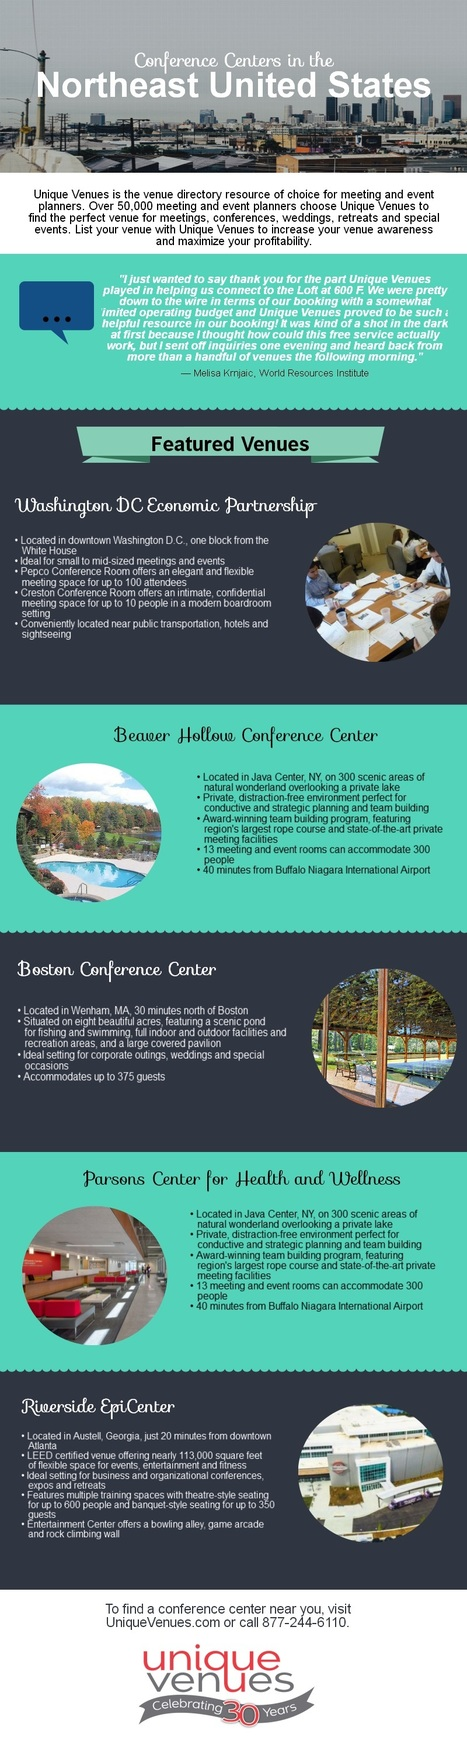 Conference Centers in the Northeast United States Infographic | Unique Venues | Scoop.it